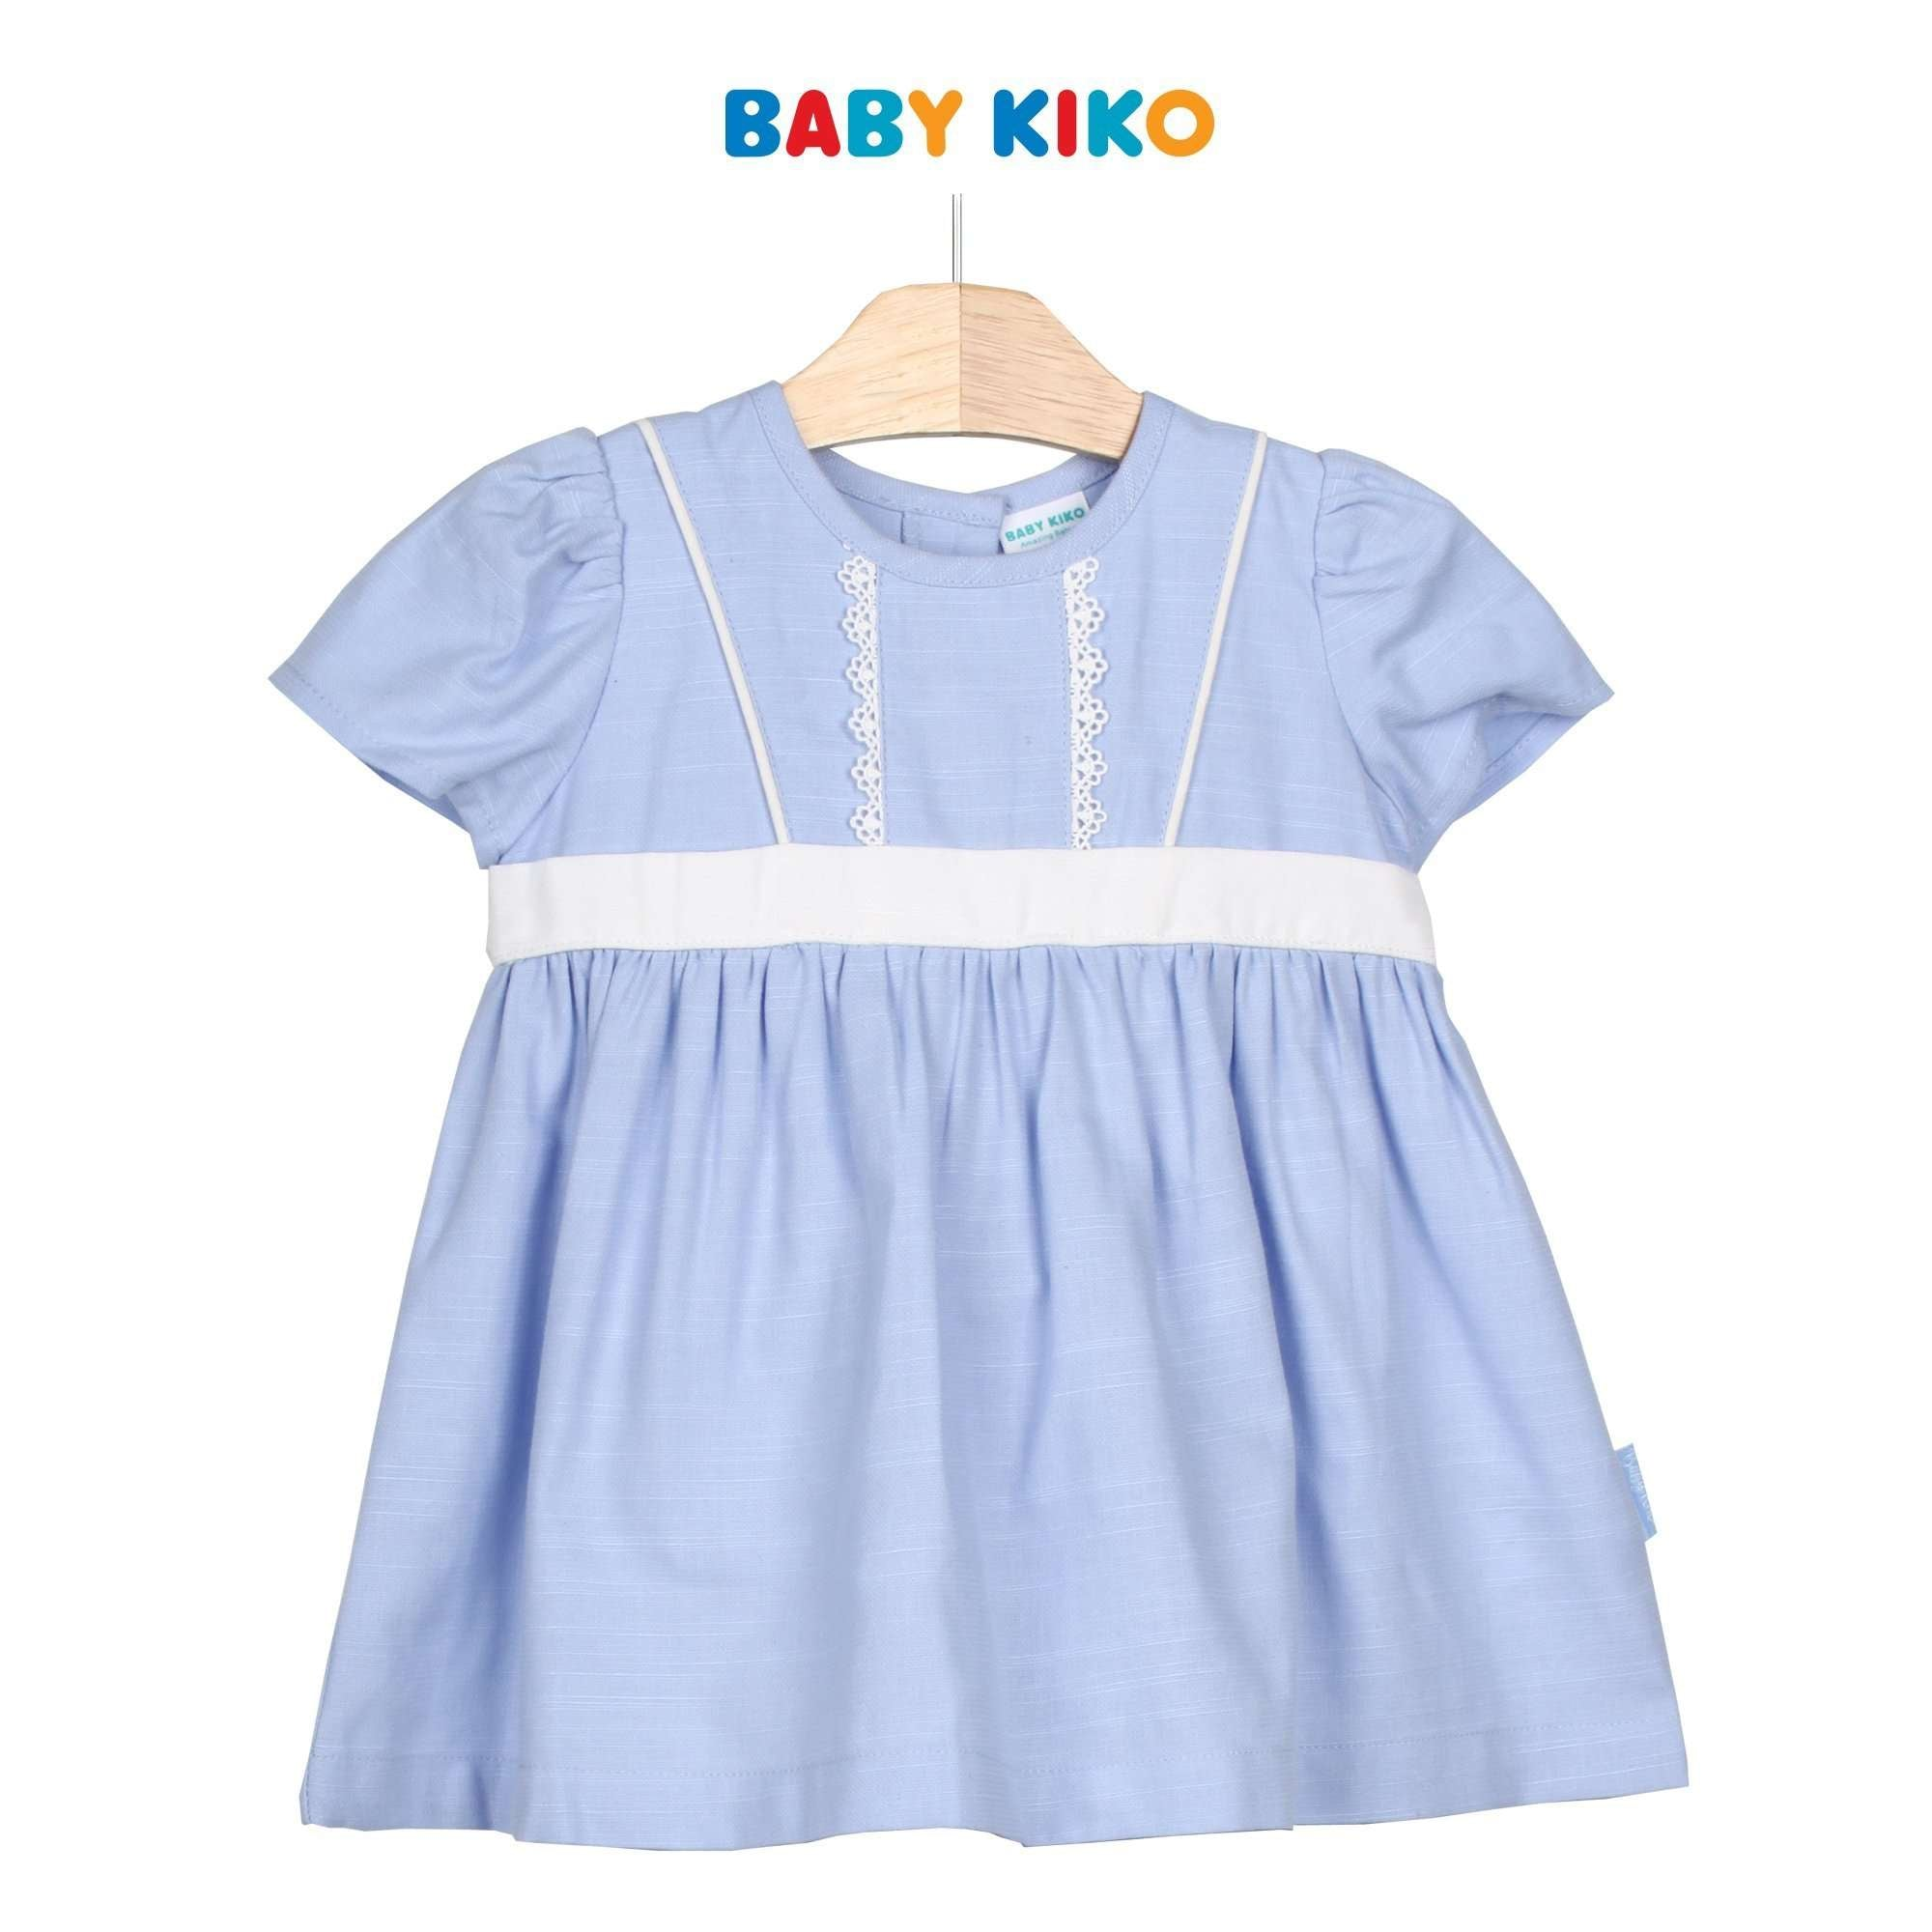 Baby KIKO Baby Girl Short Sleeve Dress 310176-312 : Buy Baby KIKO online at CMG.MY